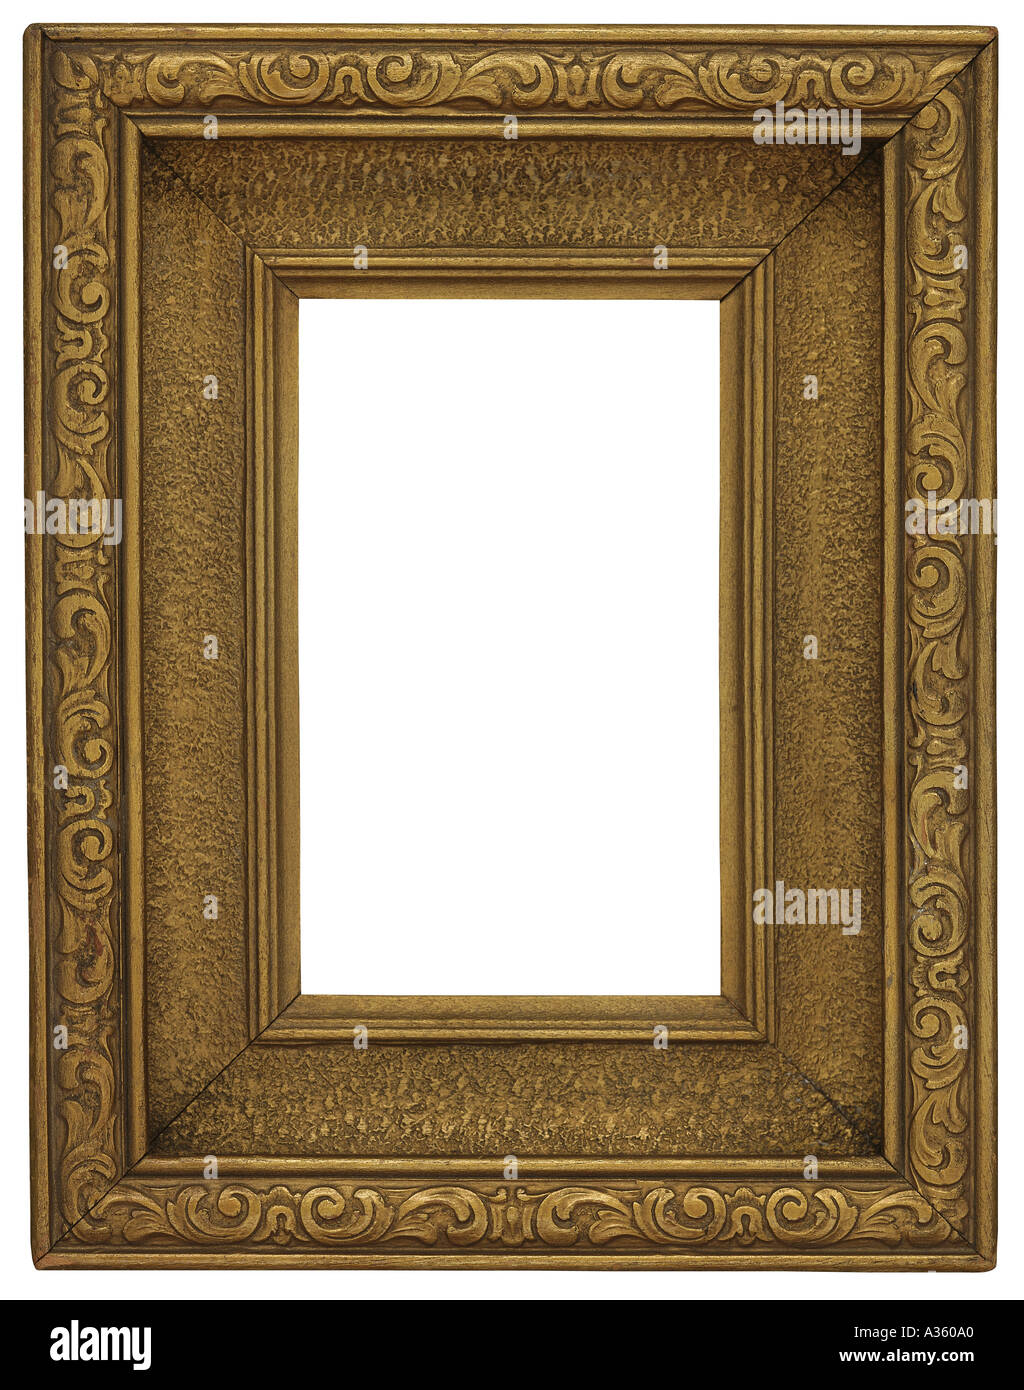 c1ee1f55b18 A vertical thick gold gilded rectangular decorative ornate antique frame